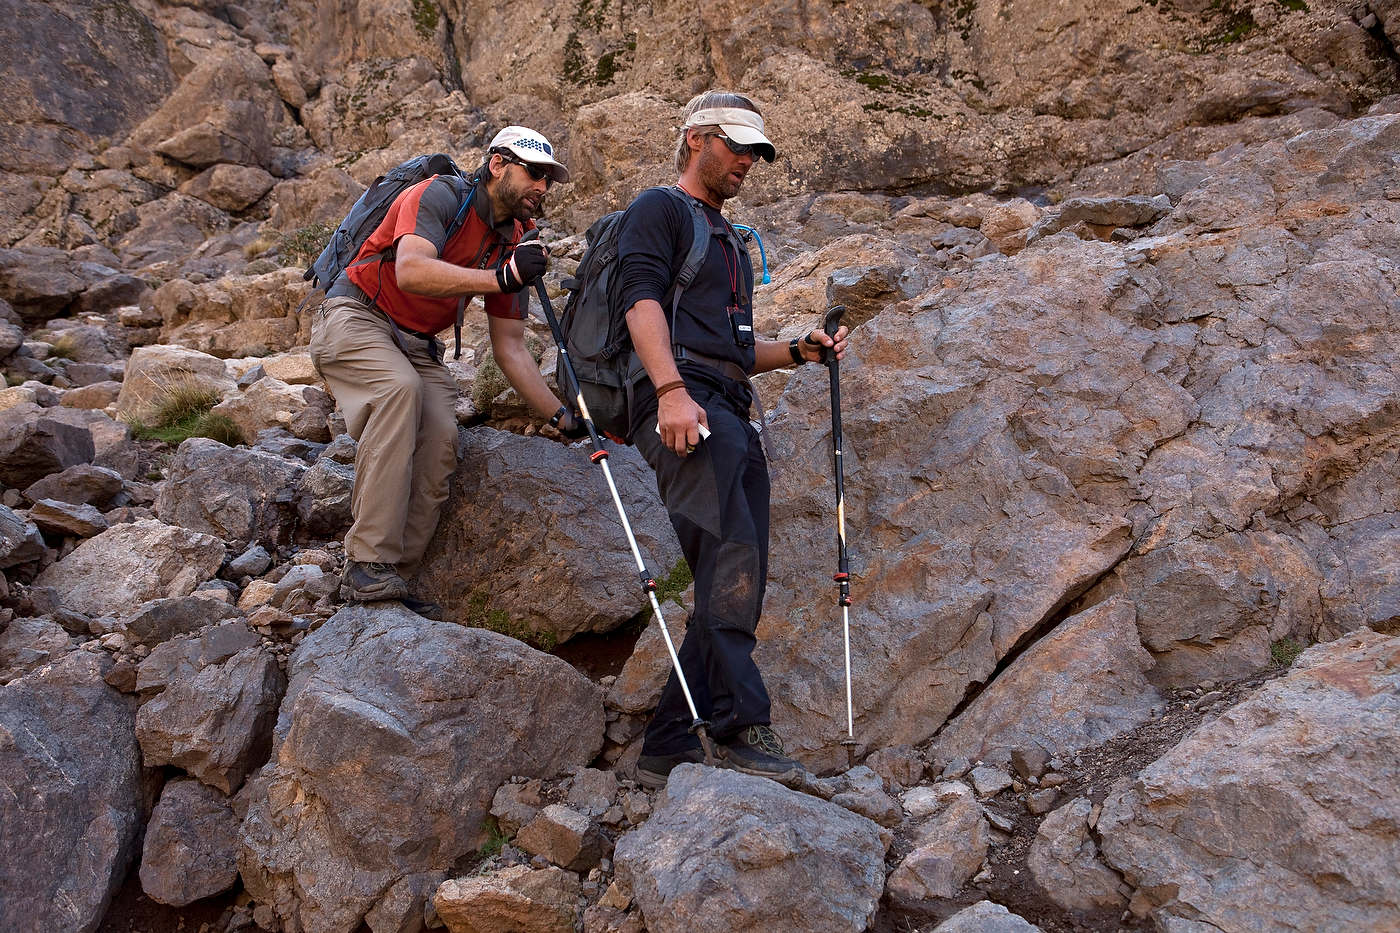 Team No Limits' Eric Weihenmayer, who is blind, follows teamate Jeff Evans as they decend from the High Atlas Mountains.